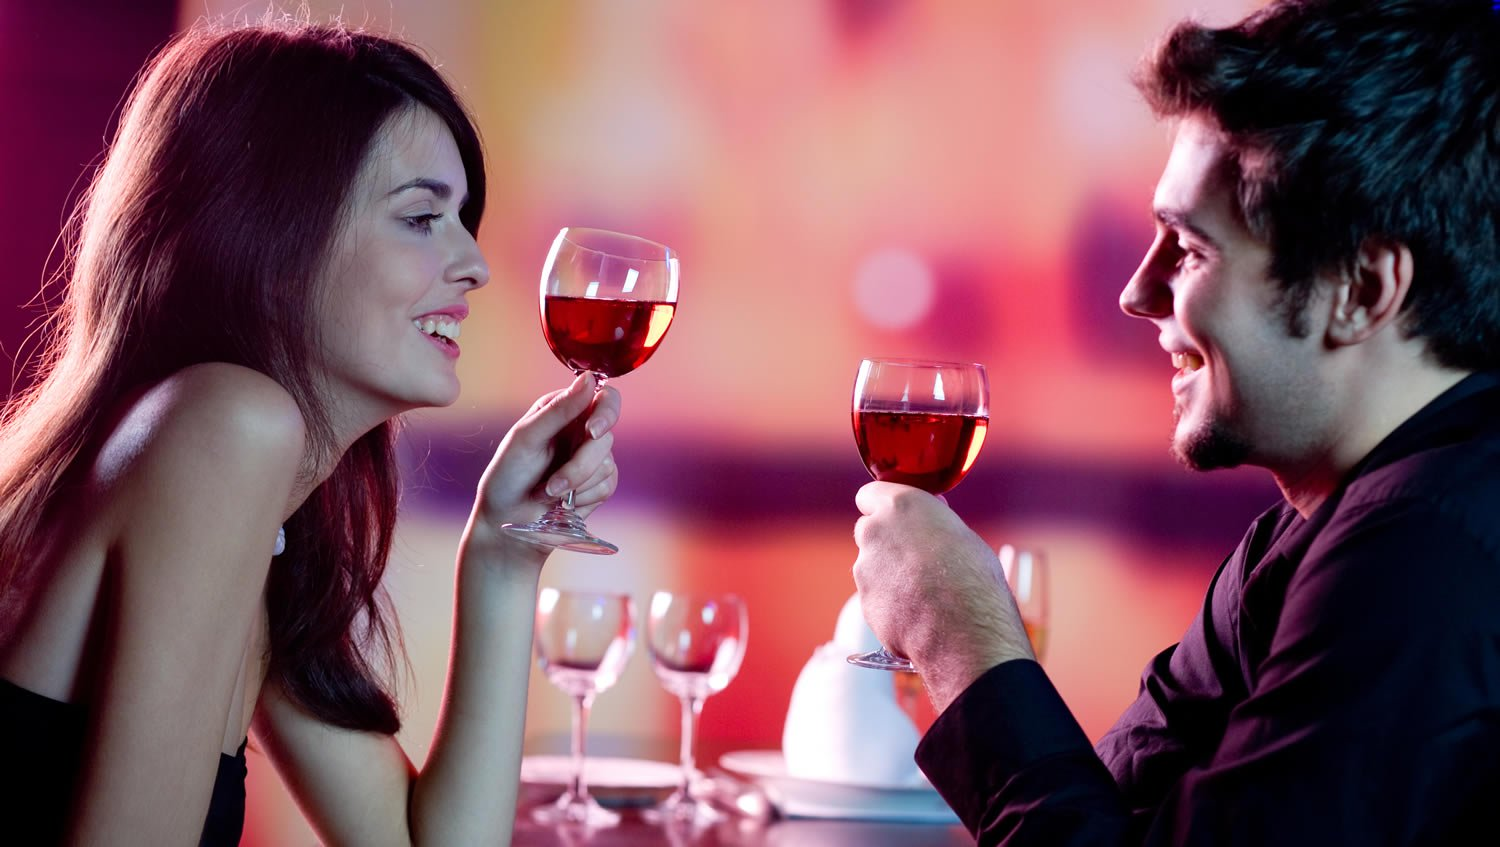 Few Tips That Can Make Online Dating a Bit More Interesting And Attractive!